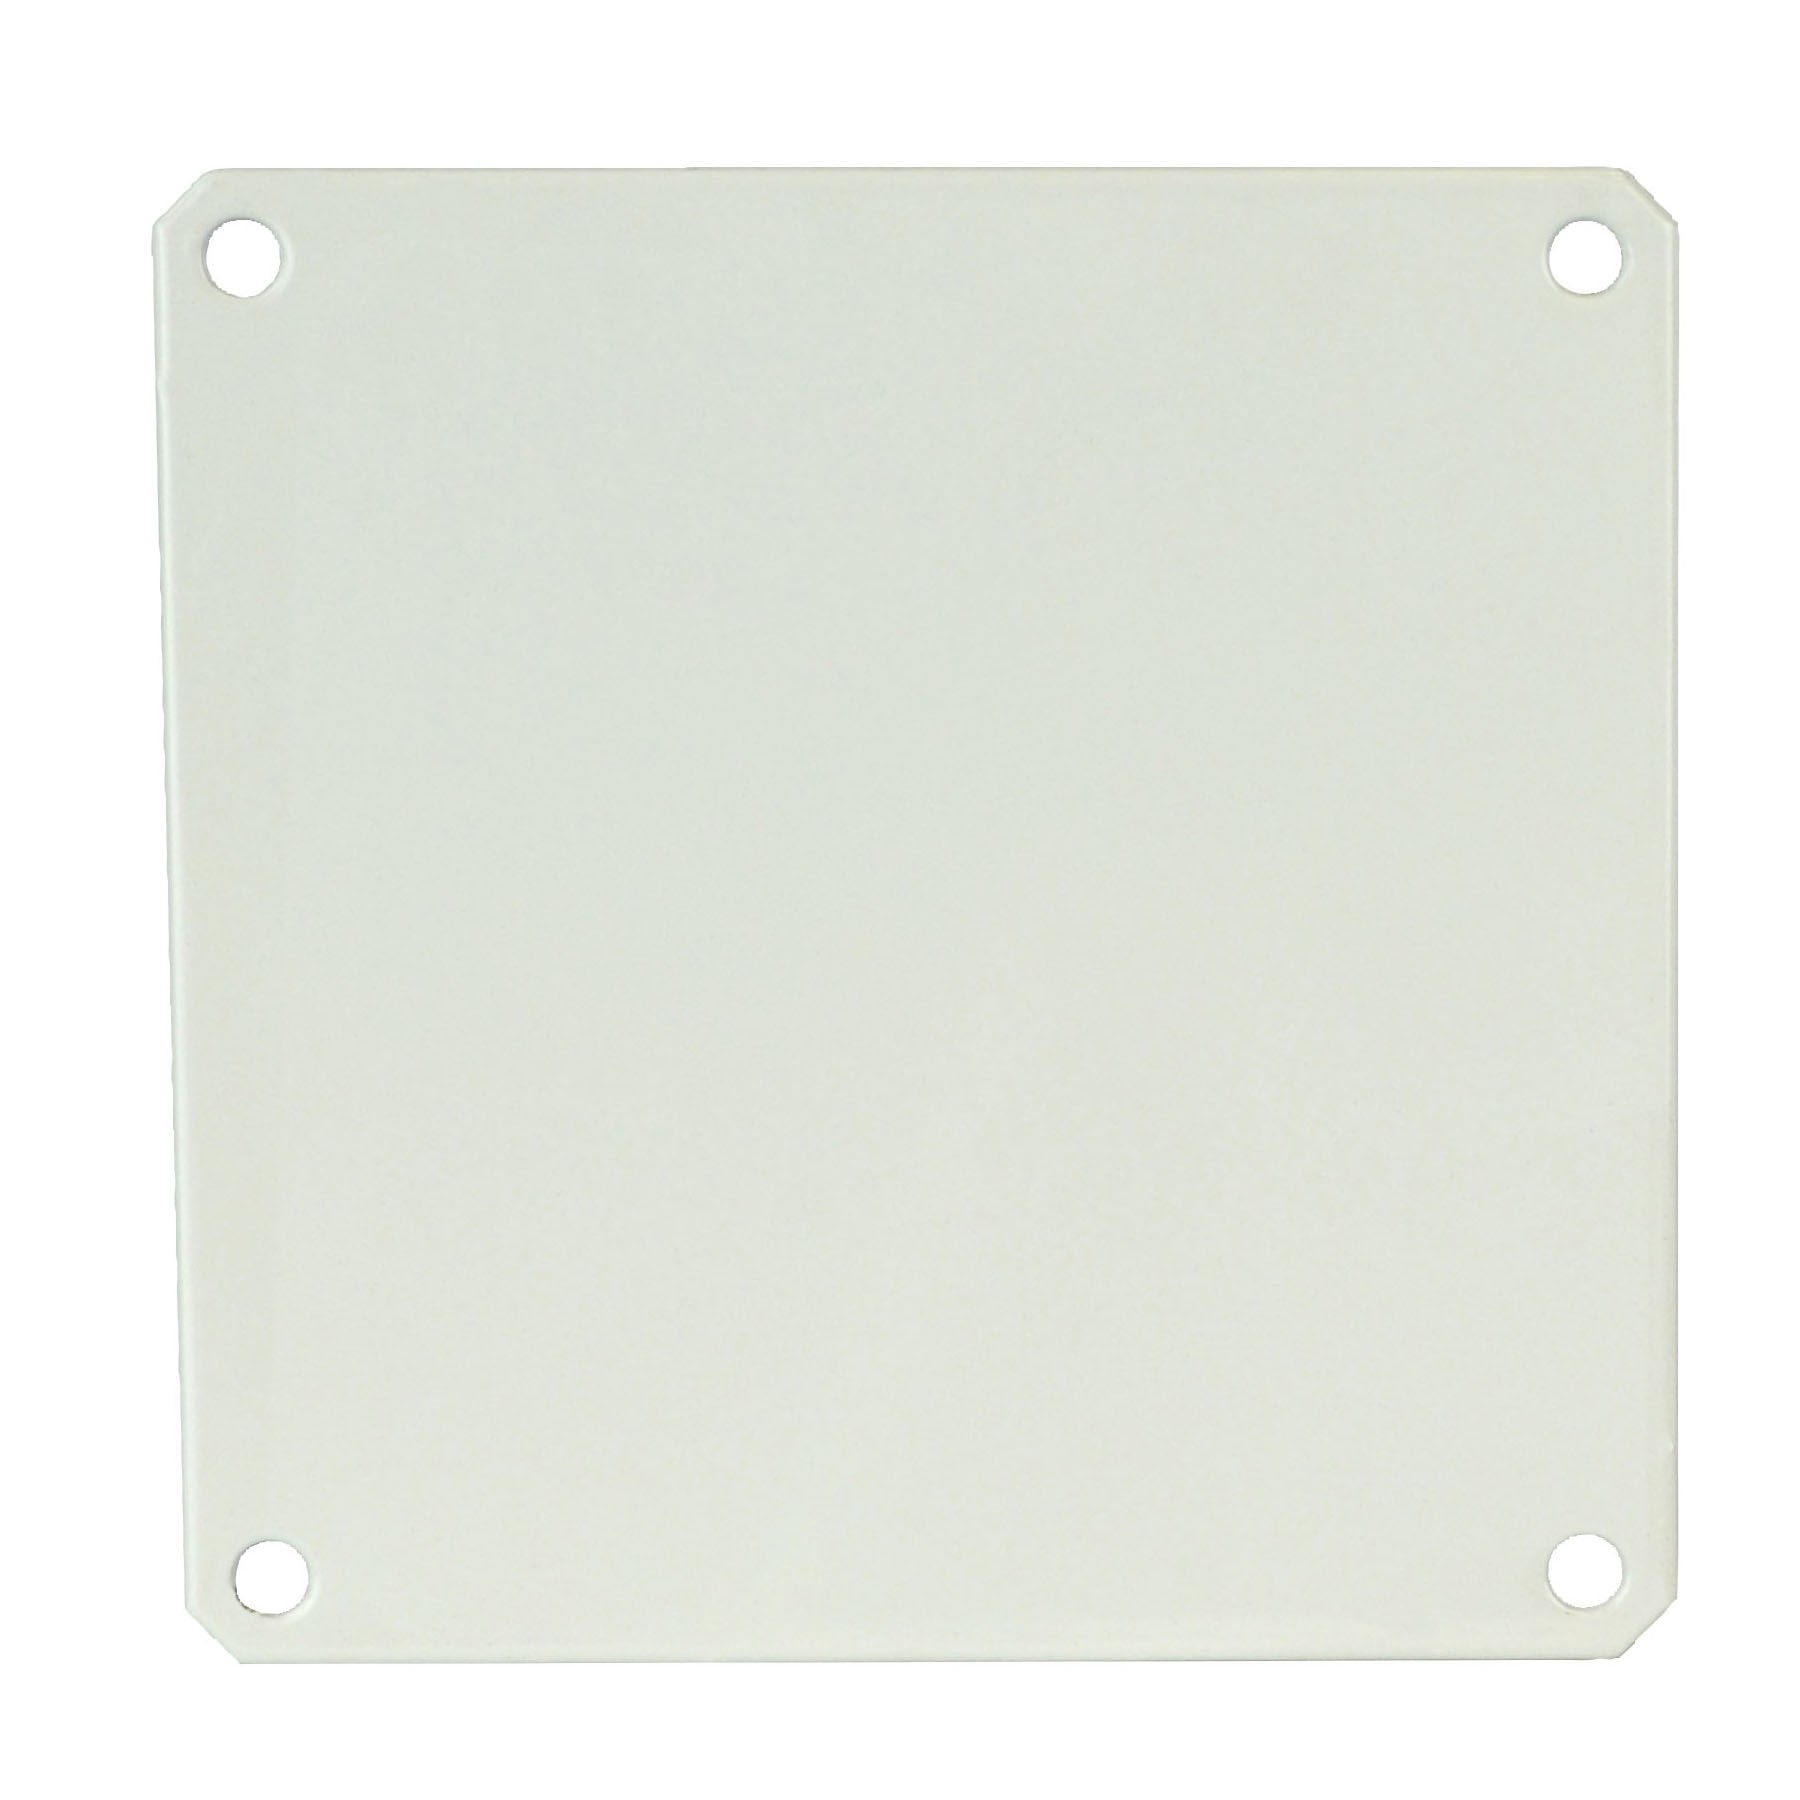 PL66 - Carbon Steel Enclosure Back Panel Kit